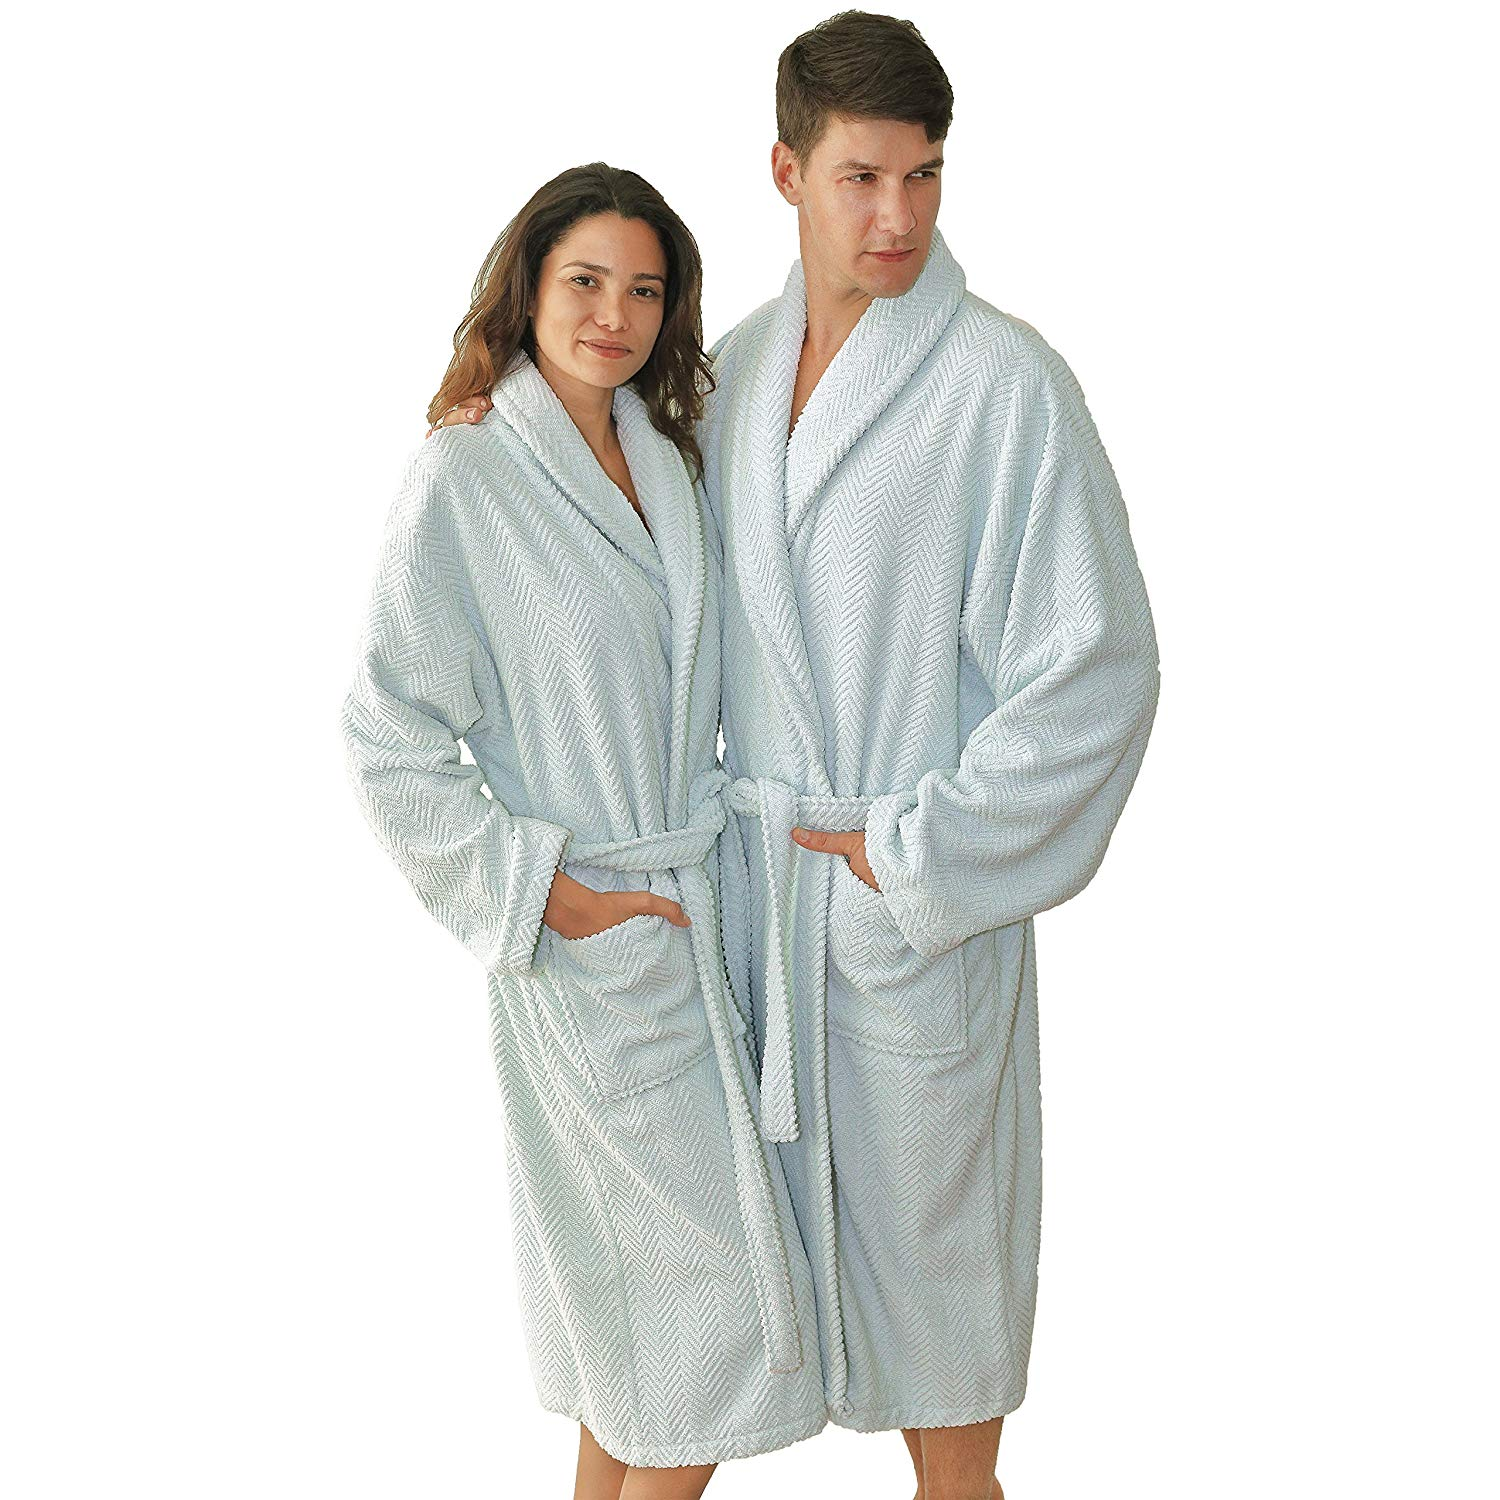 64a38477fe Get Quotations · HT 46 Inches Ice Blue Solid Color Small Medium Unisex  Bathrobe